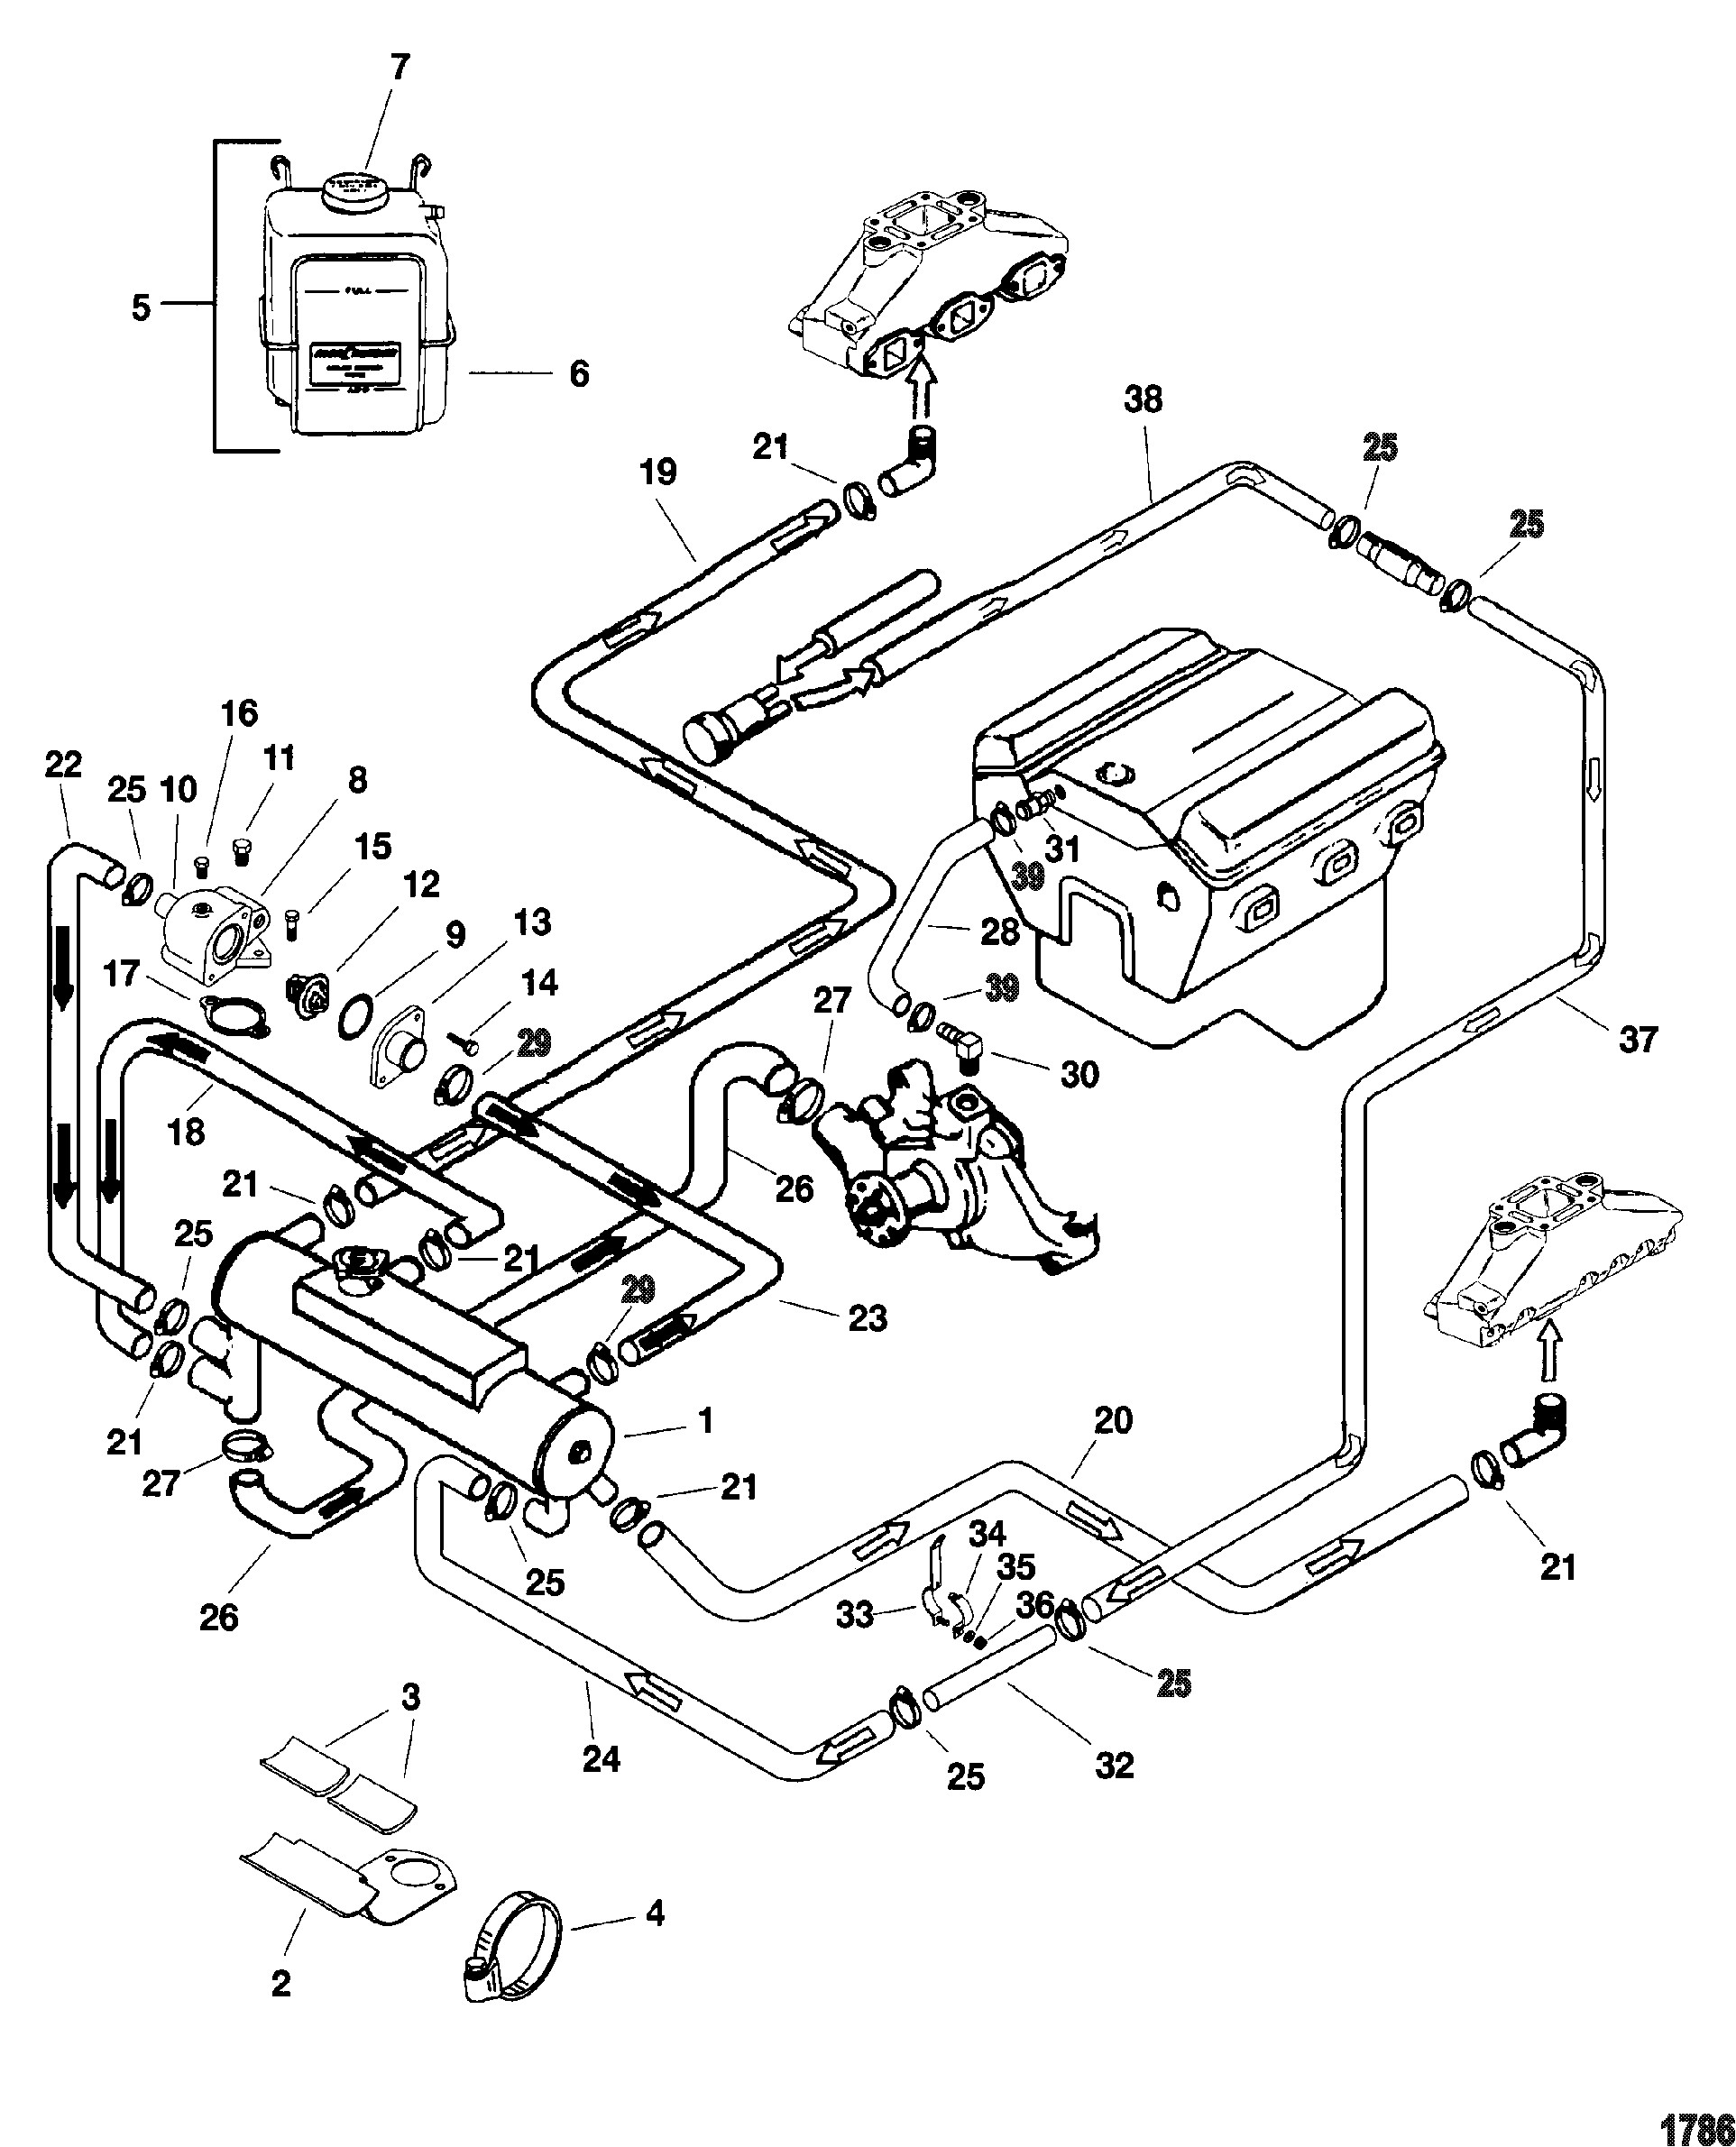 hight resolution of ford edge engine wire diagram wiring library rh 93 evitta de 2007 ford fusion 2 3 starter